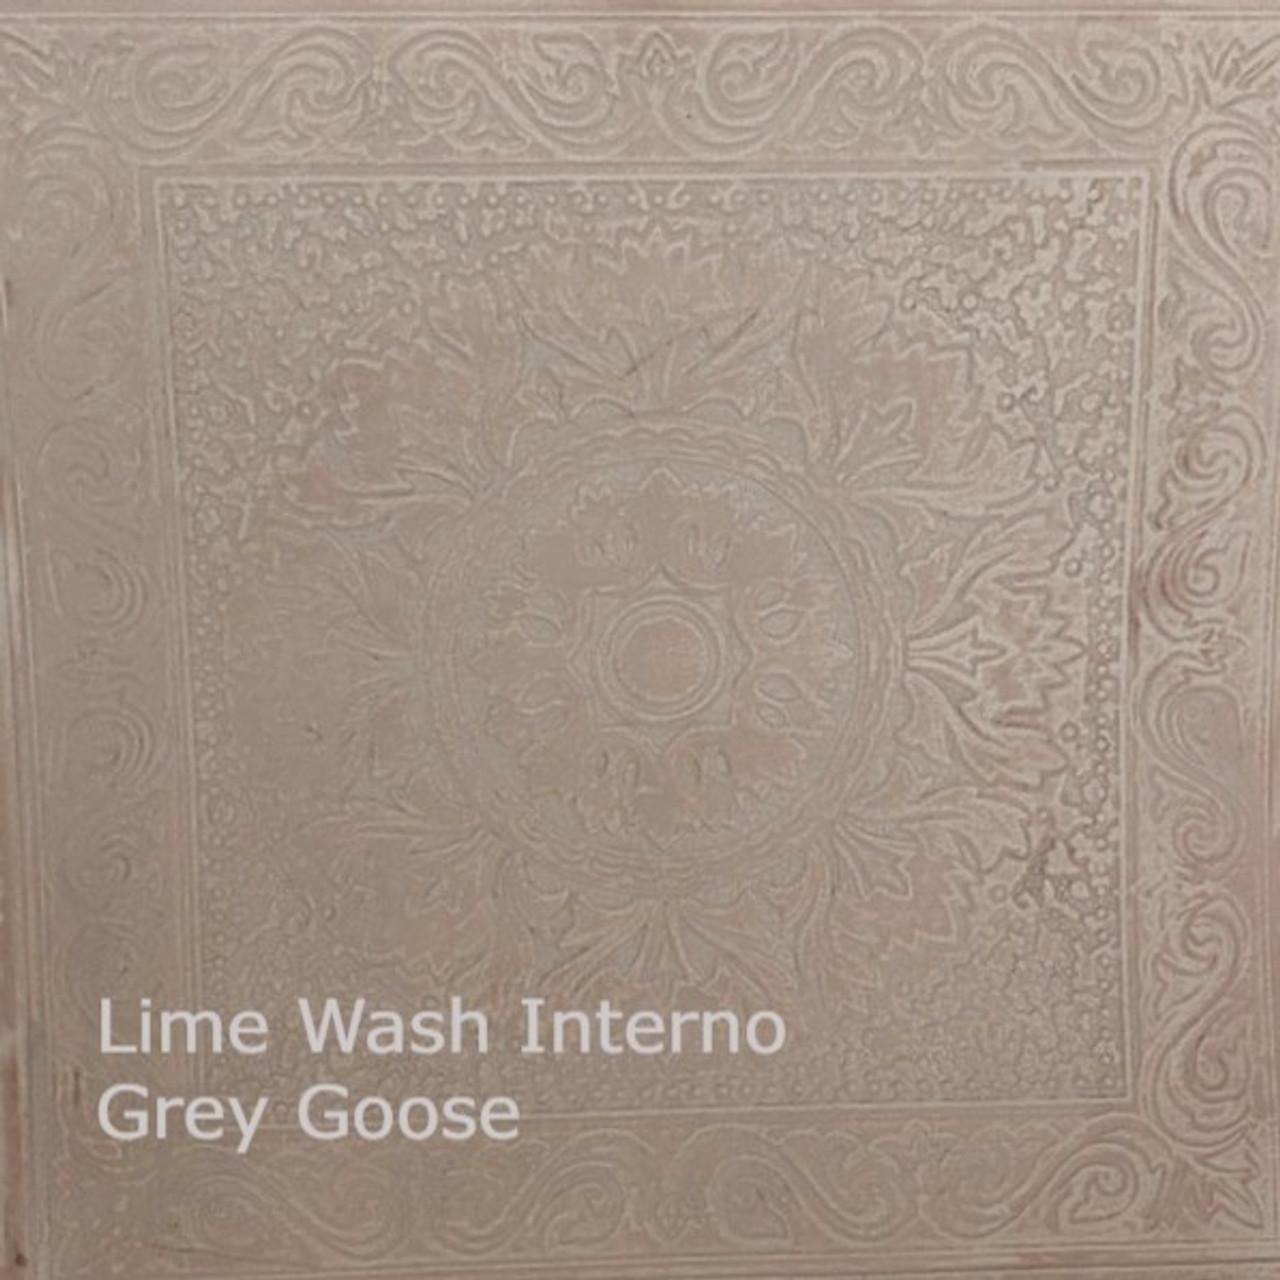 Interno Lime Wash, Grey Goose